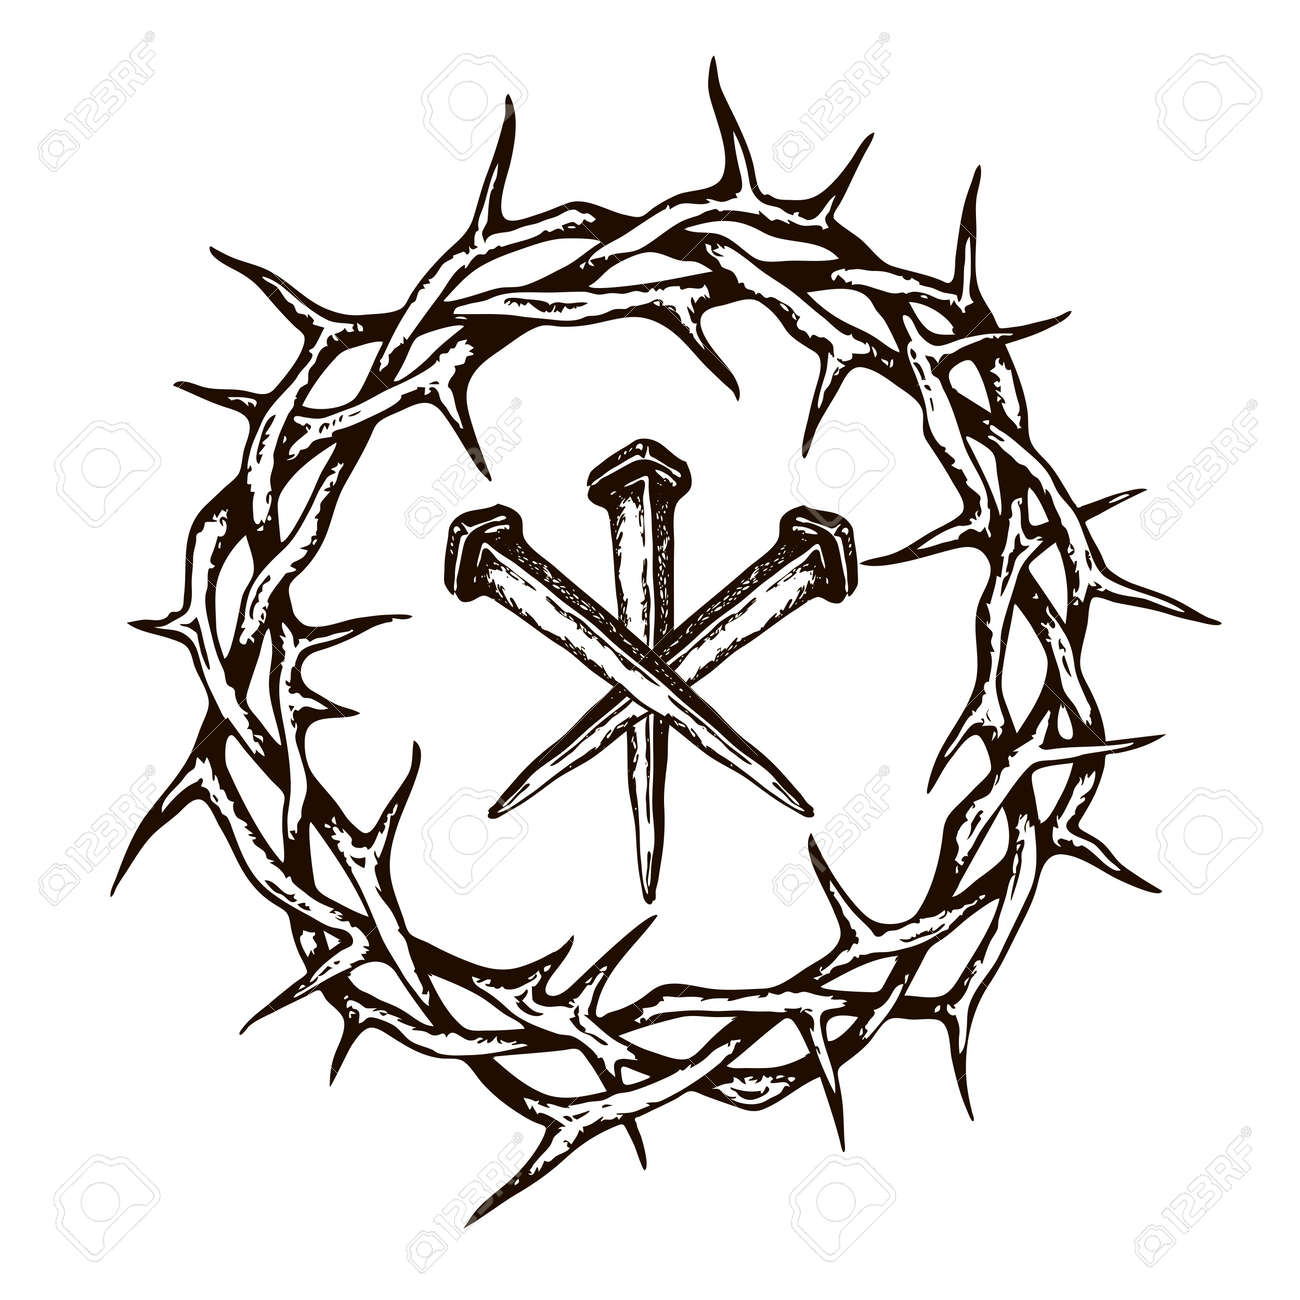 image of jesus nails with thorn crown isolated on white background - 138770998